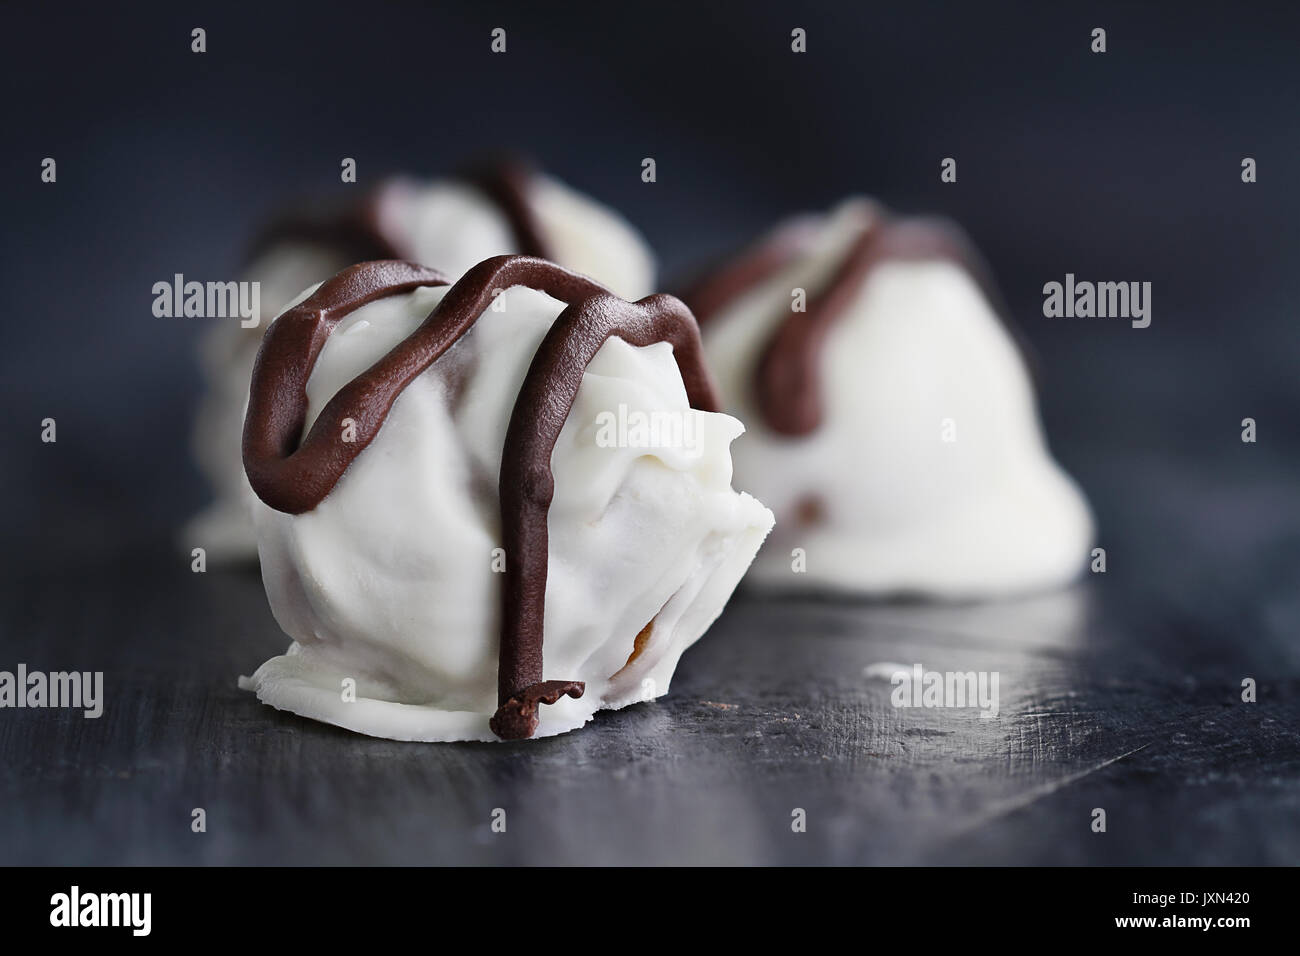 White Chocolate truffles for Christmas or Valentines's Day drizzled with dark chocolate. Extreme shallow depth of field with selective focus on candy  - Stock Image